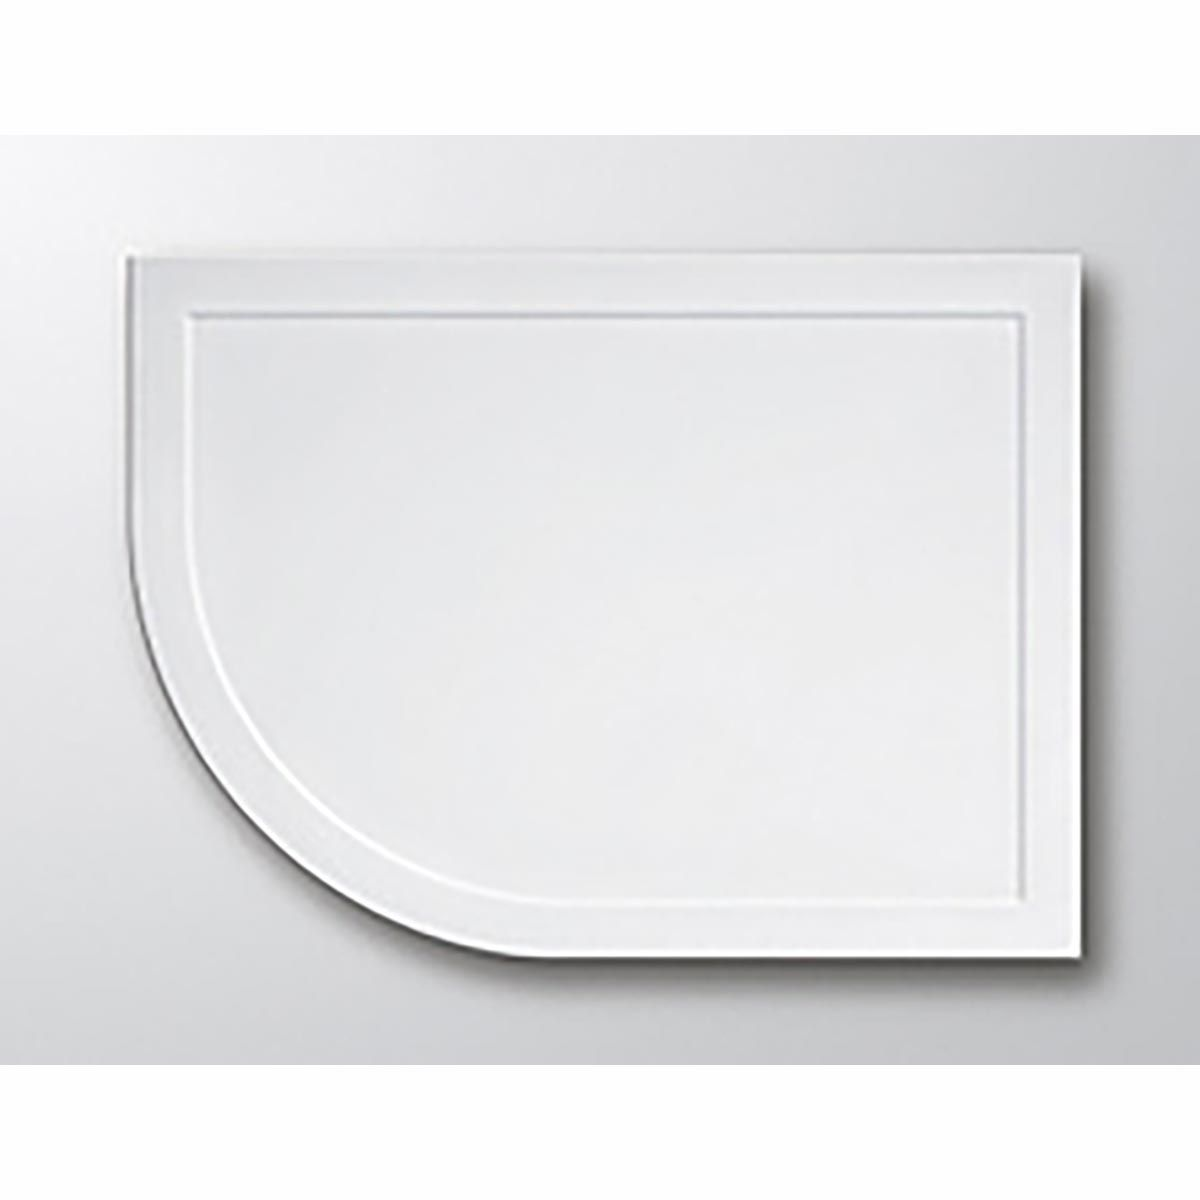 Lakes White Low Profile Offset Quadrant ABS Tray Left Hand 1000mm X 800mm